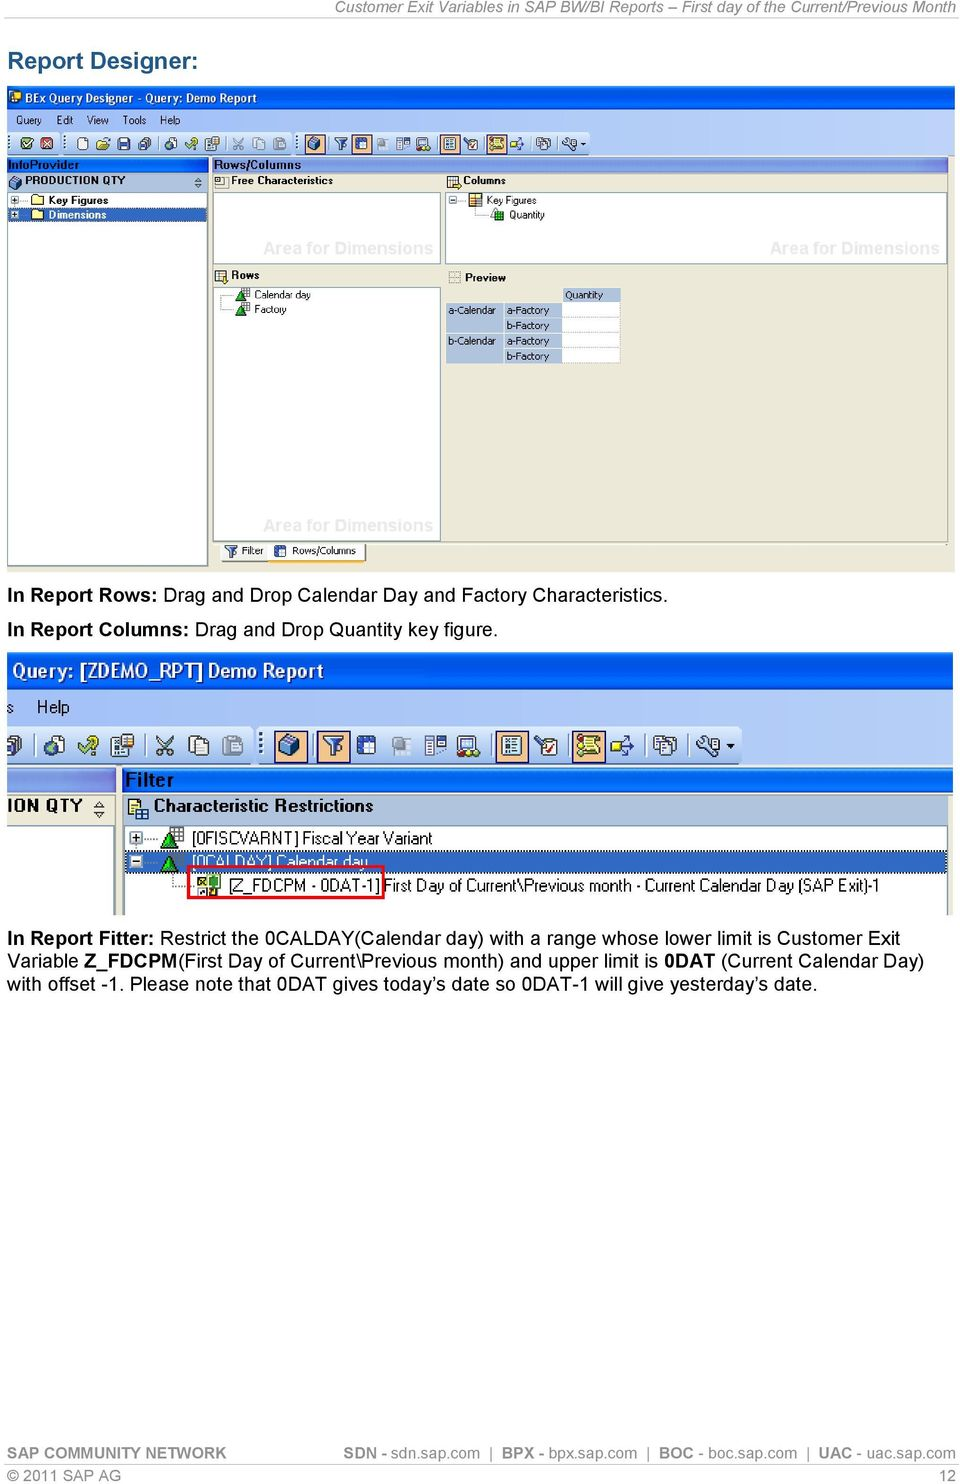 Customer Exit Variables in SAP BW/BI Reports First day of the